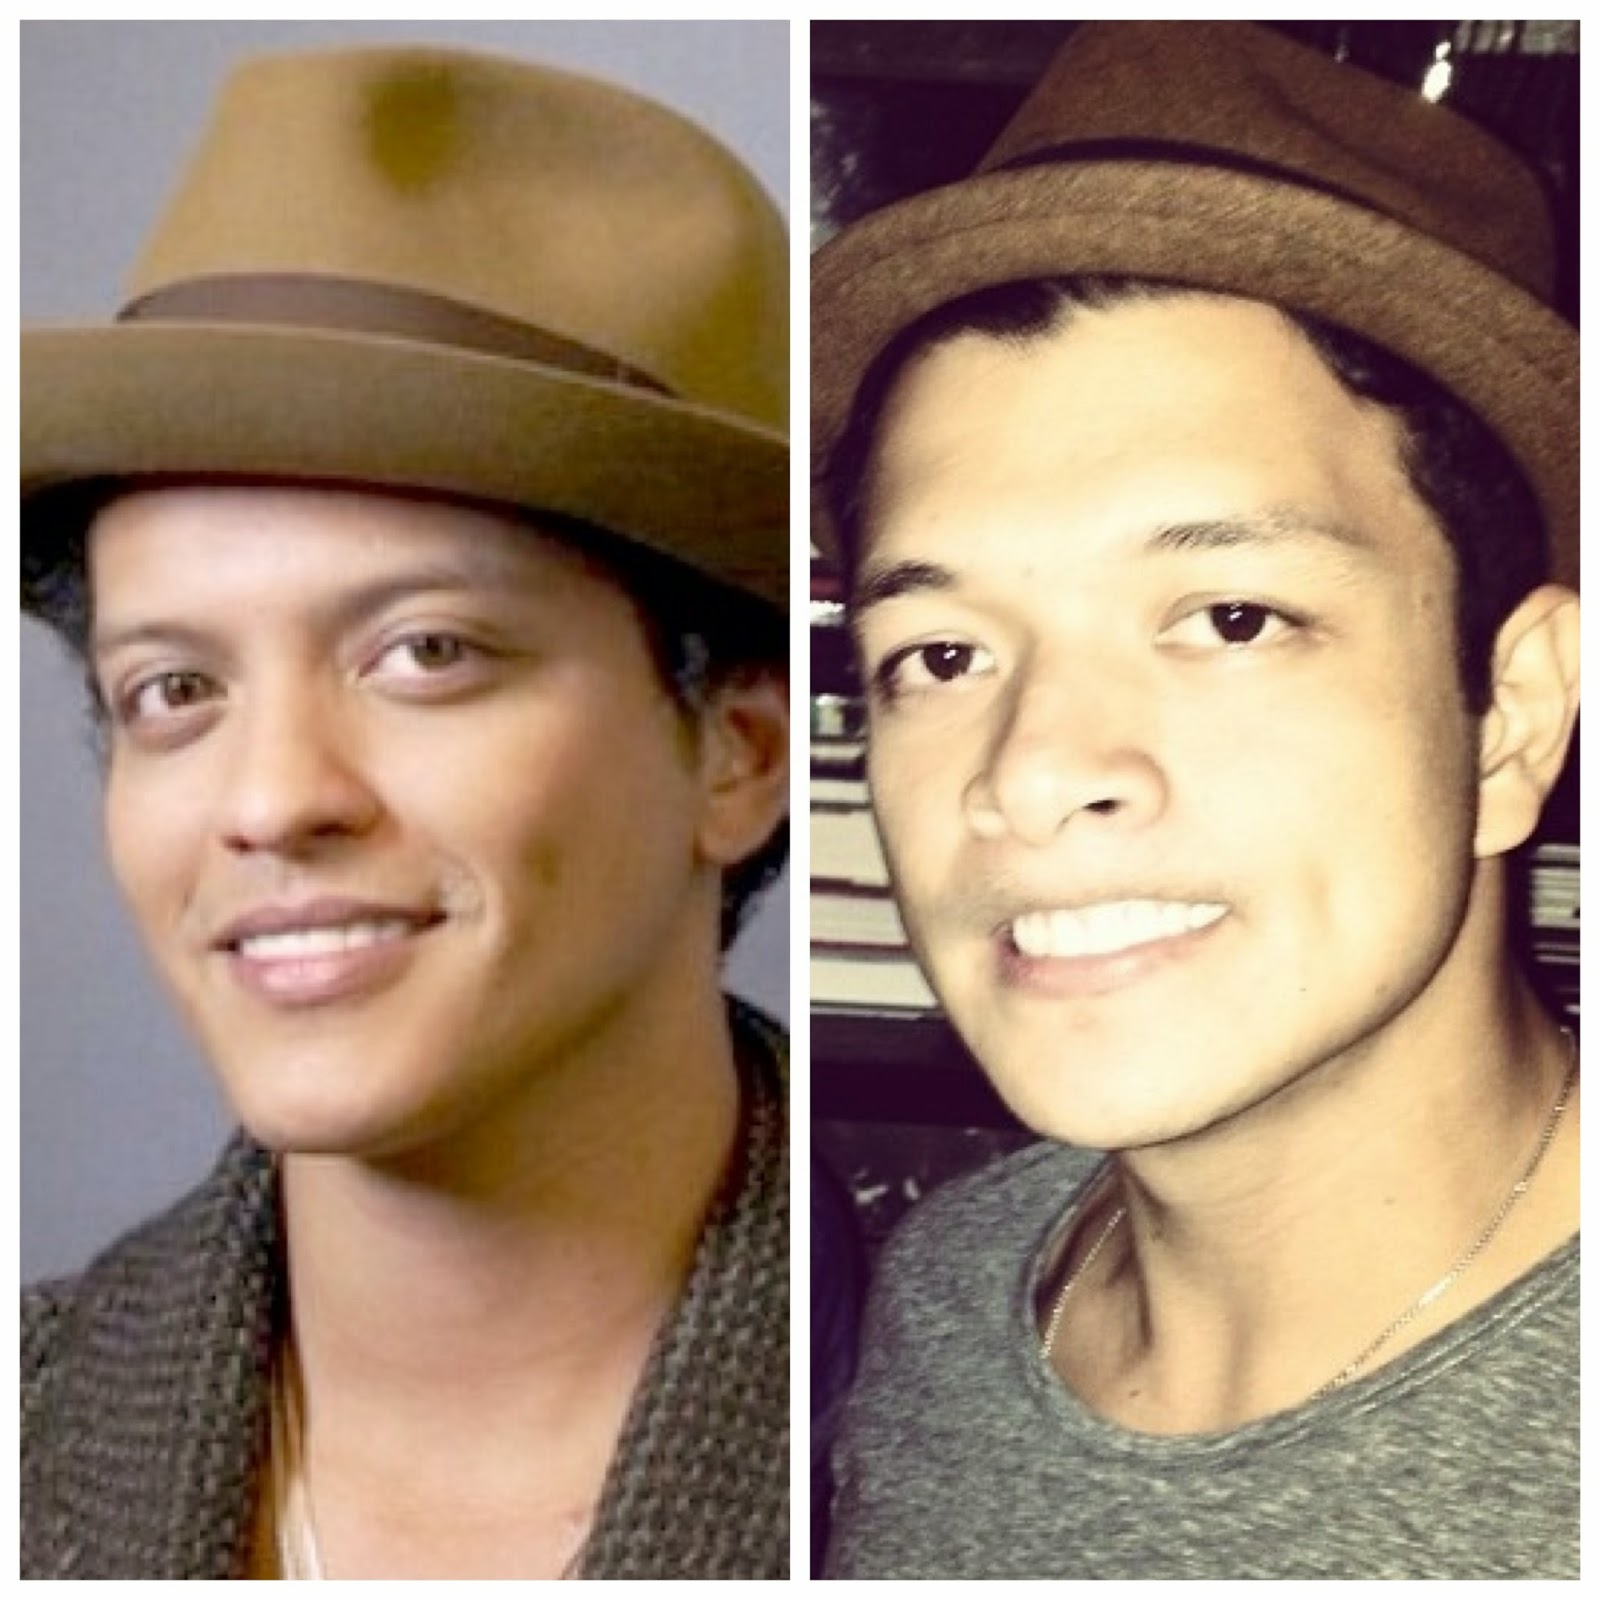 Bruno Mars Favorite Music, Drink, Instrument and other Favorite Things ...